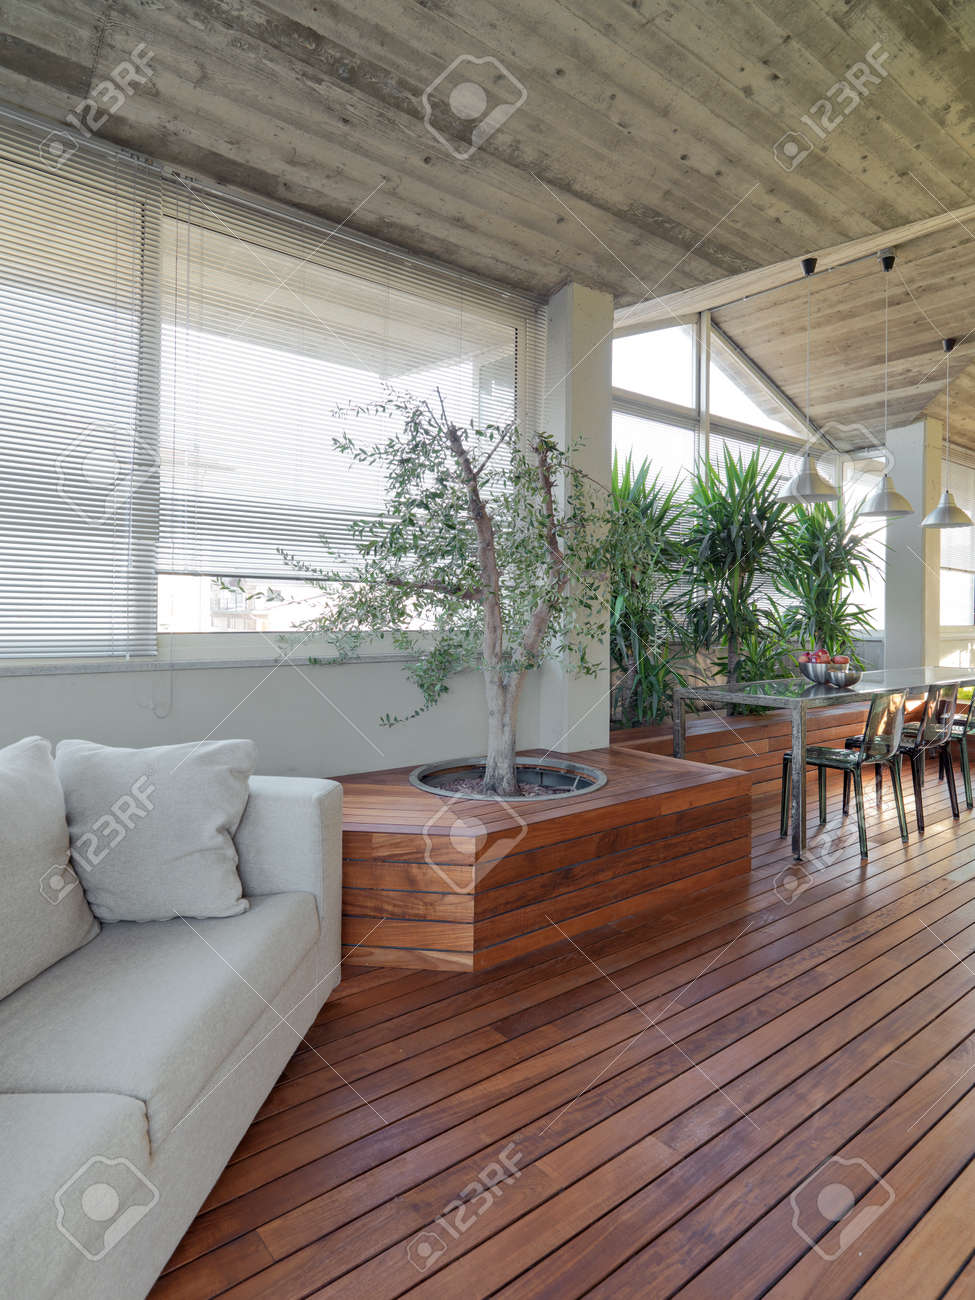 Exterior View Of A Modern Terrace With Gray Fabric Sofa, Plants, Wood Floor  And